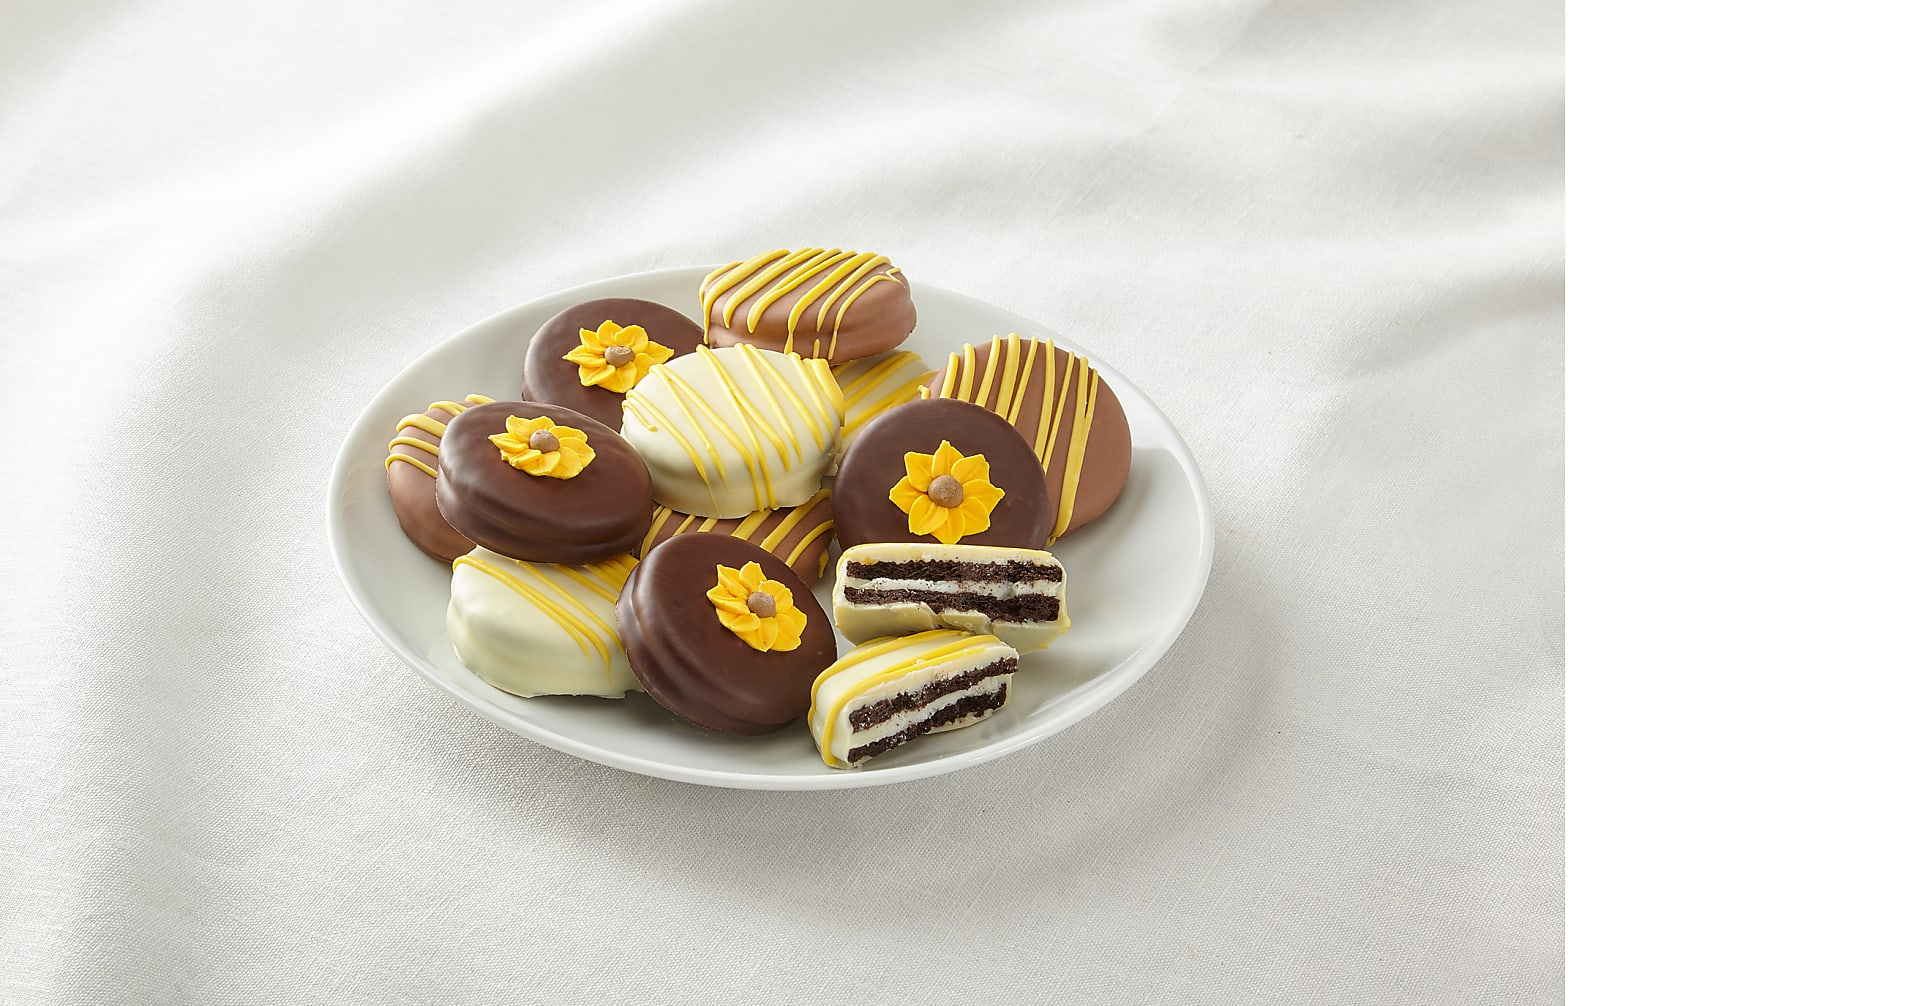 Full Dozen Sunny Days Chocolate-Covered OREO® Cookies - Image 1 Of 2